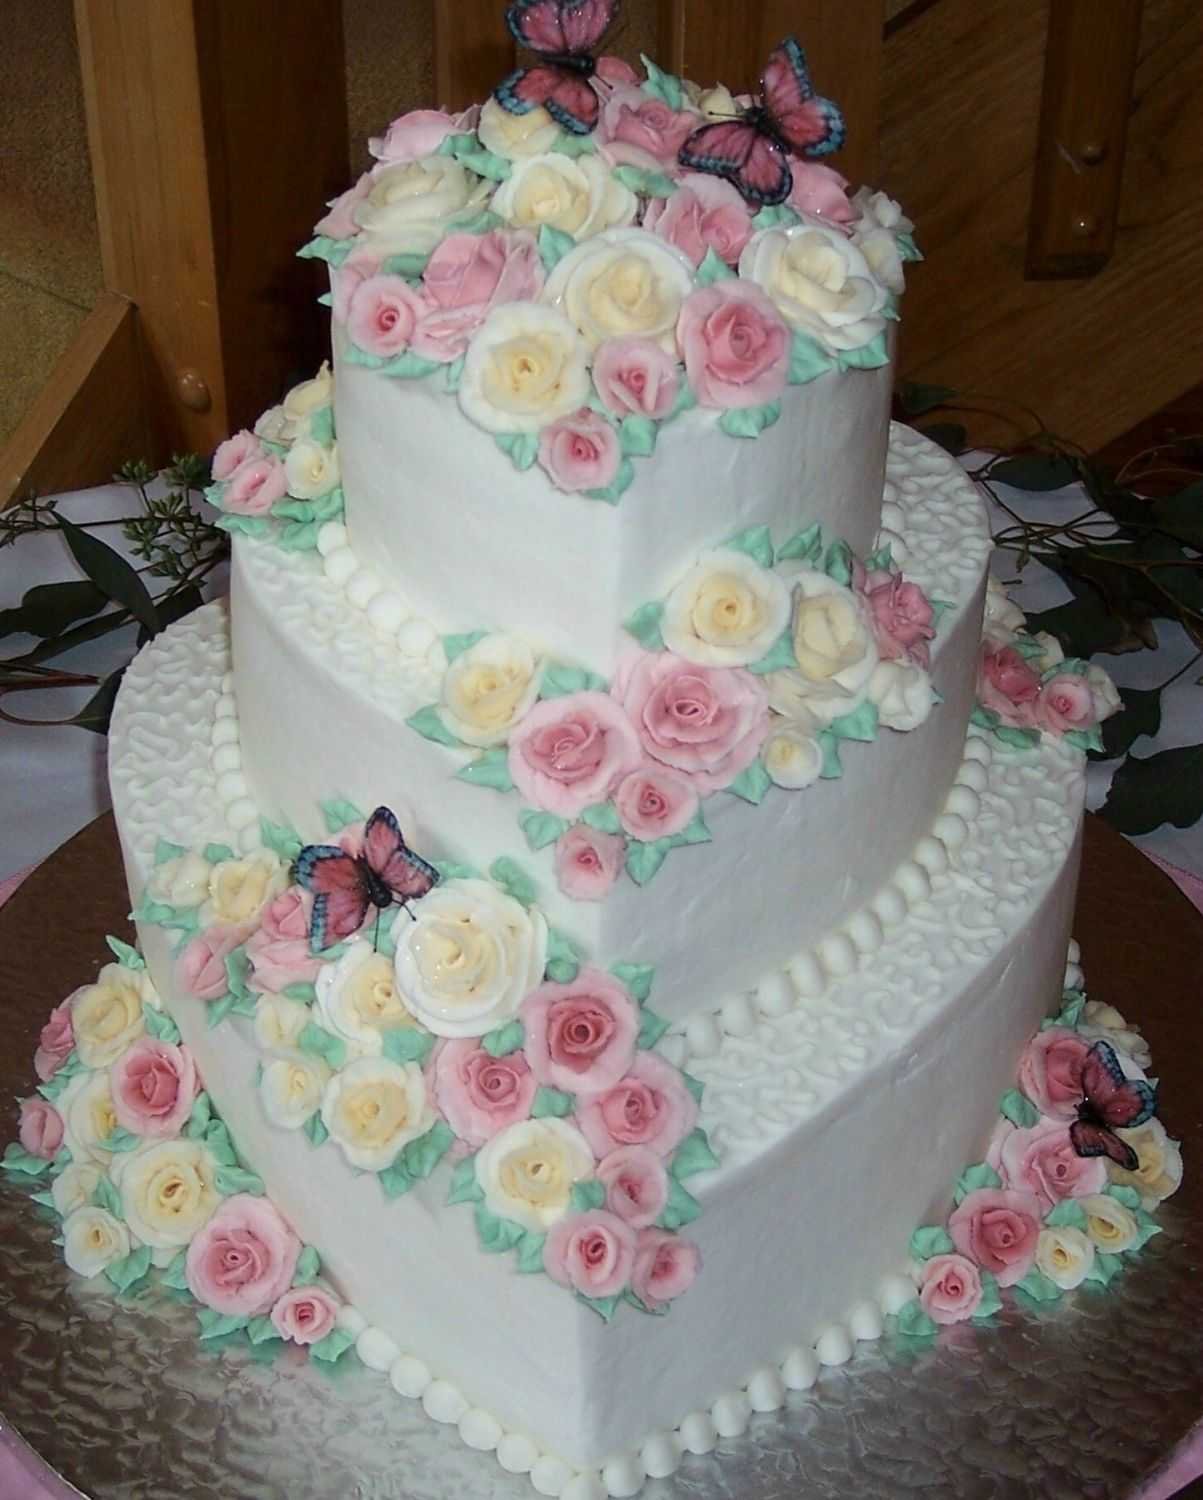 Butterfly rose garden other mixed shaped wedding cakes